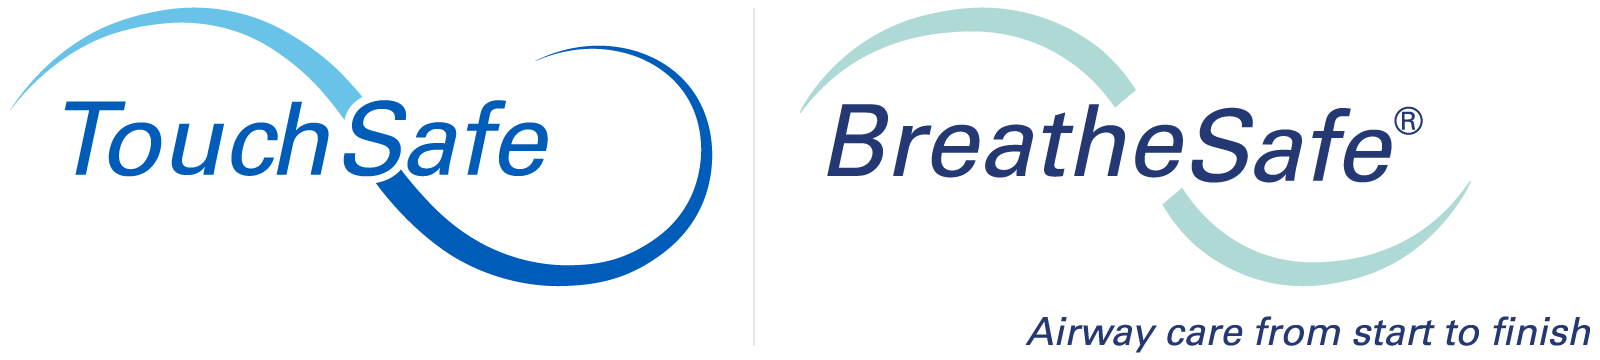 BreatheSafe Airway Care